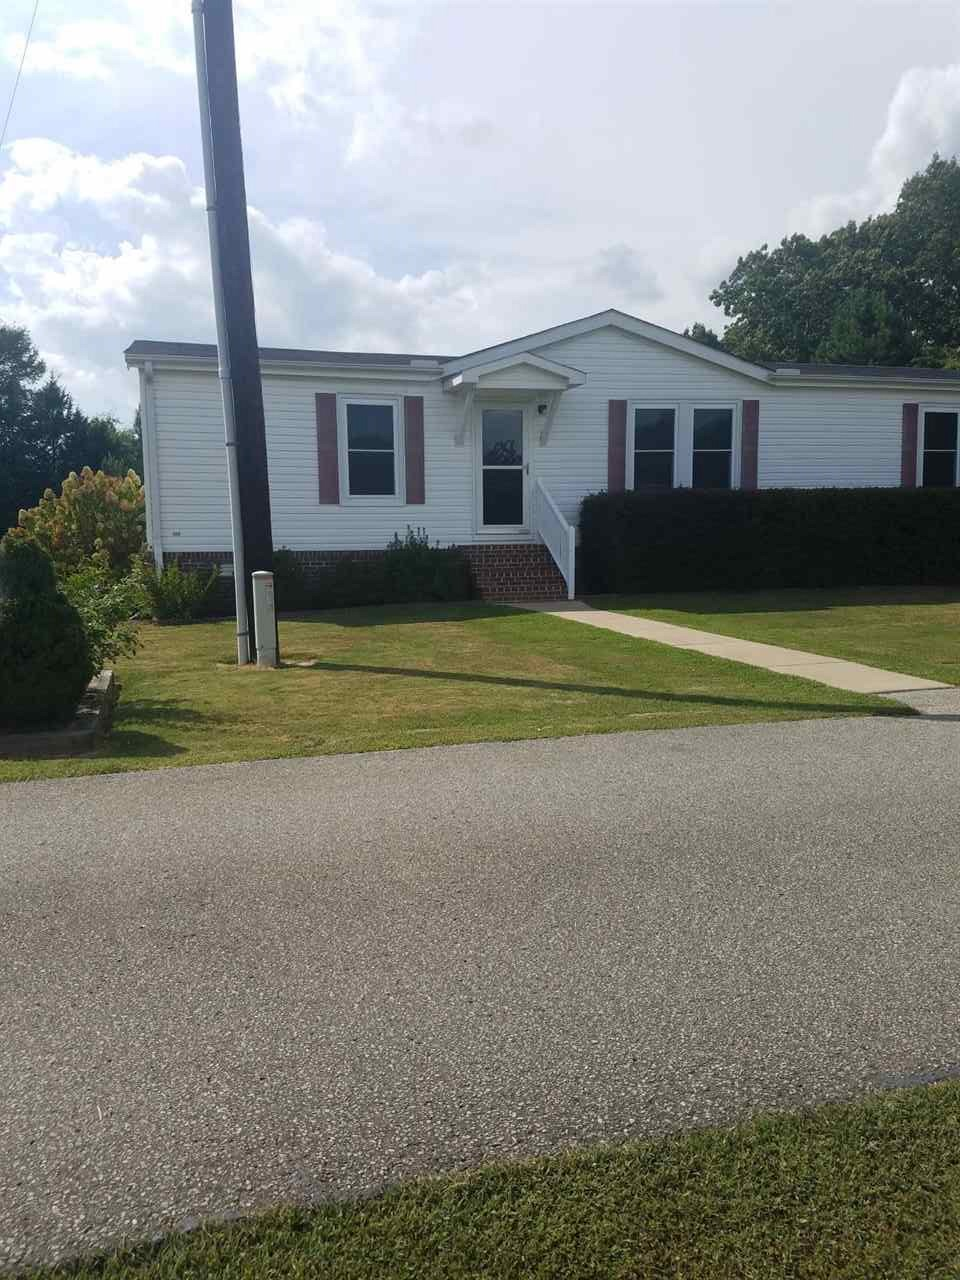 6285 St Rt 200,Henderson,Tennessee 38340,3 Bedrooms Bedrooms,2 BathroomsBathrooms,Residential,6285 St Rt 200,184828